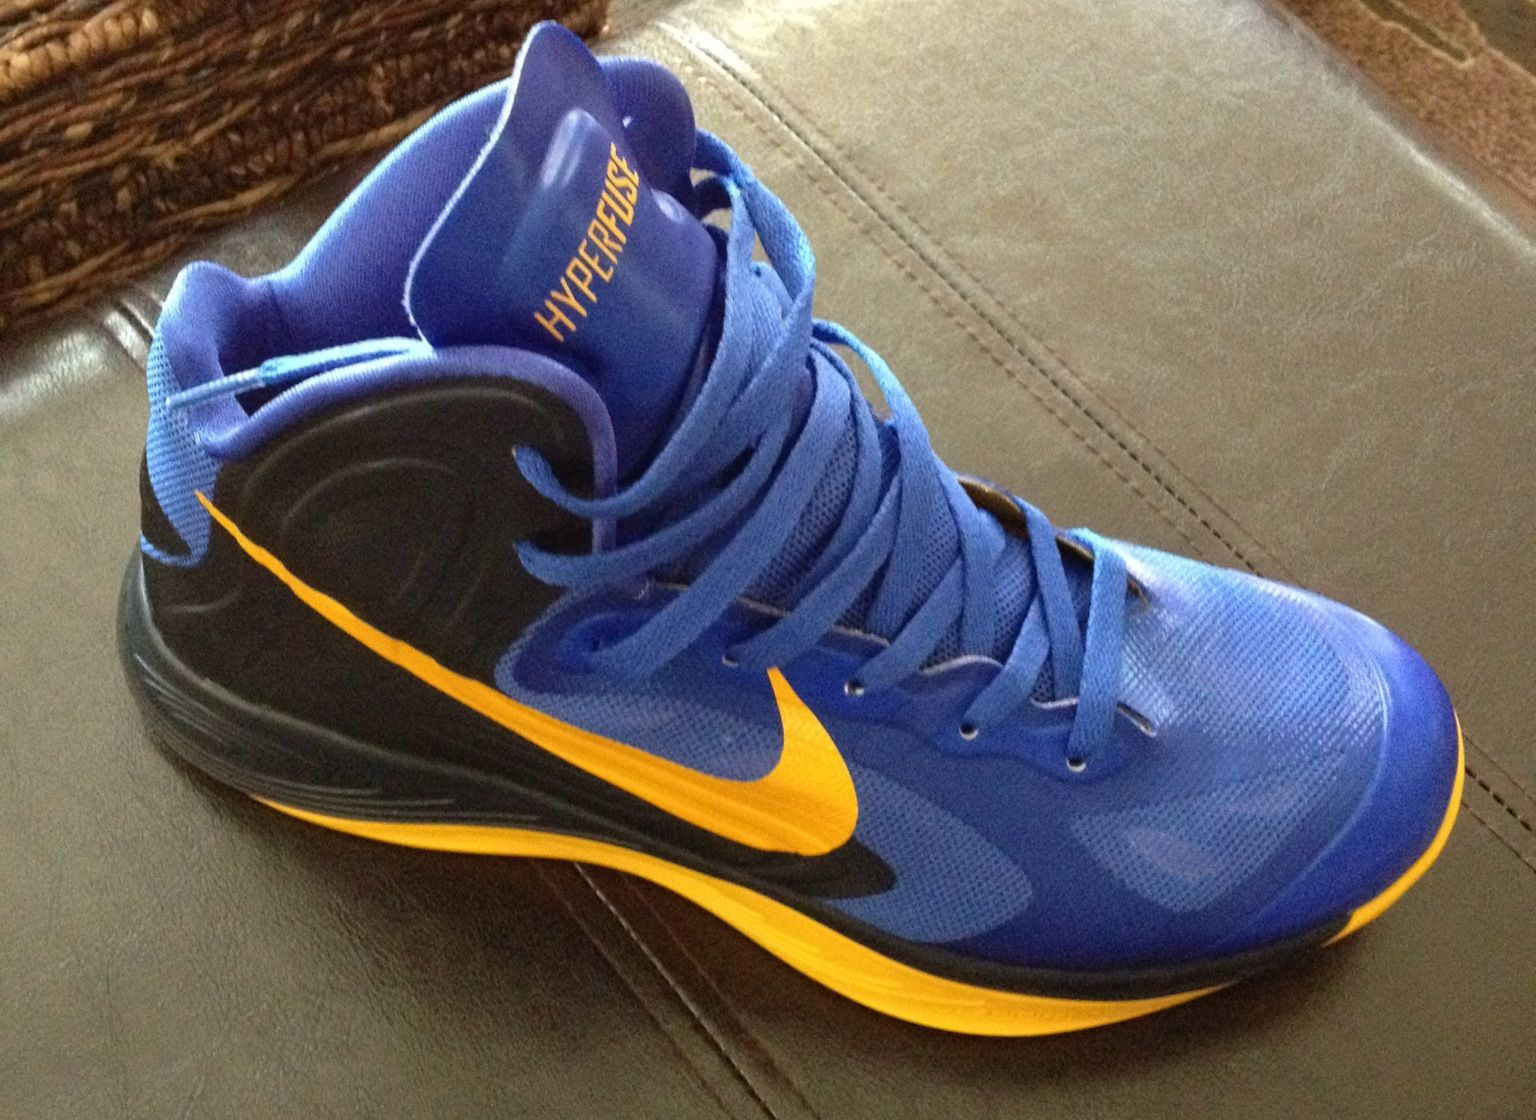 Basketball Shoes Hyperfuse Steph Curry Basketball Pinterest